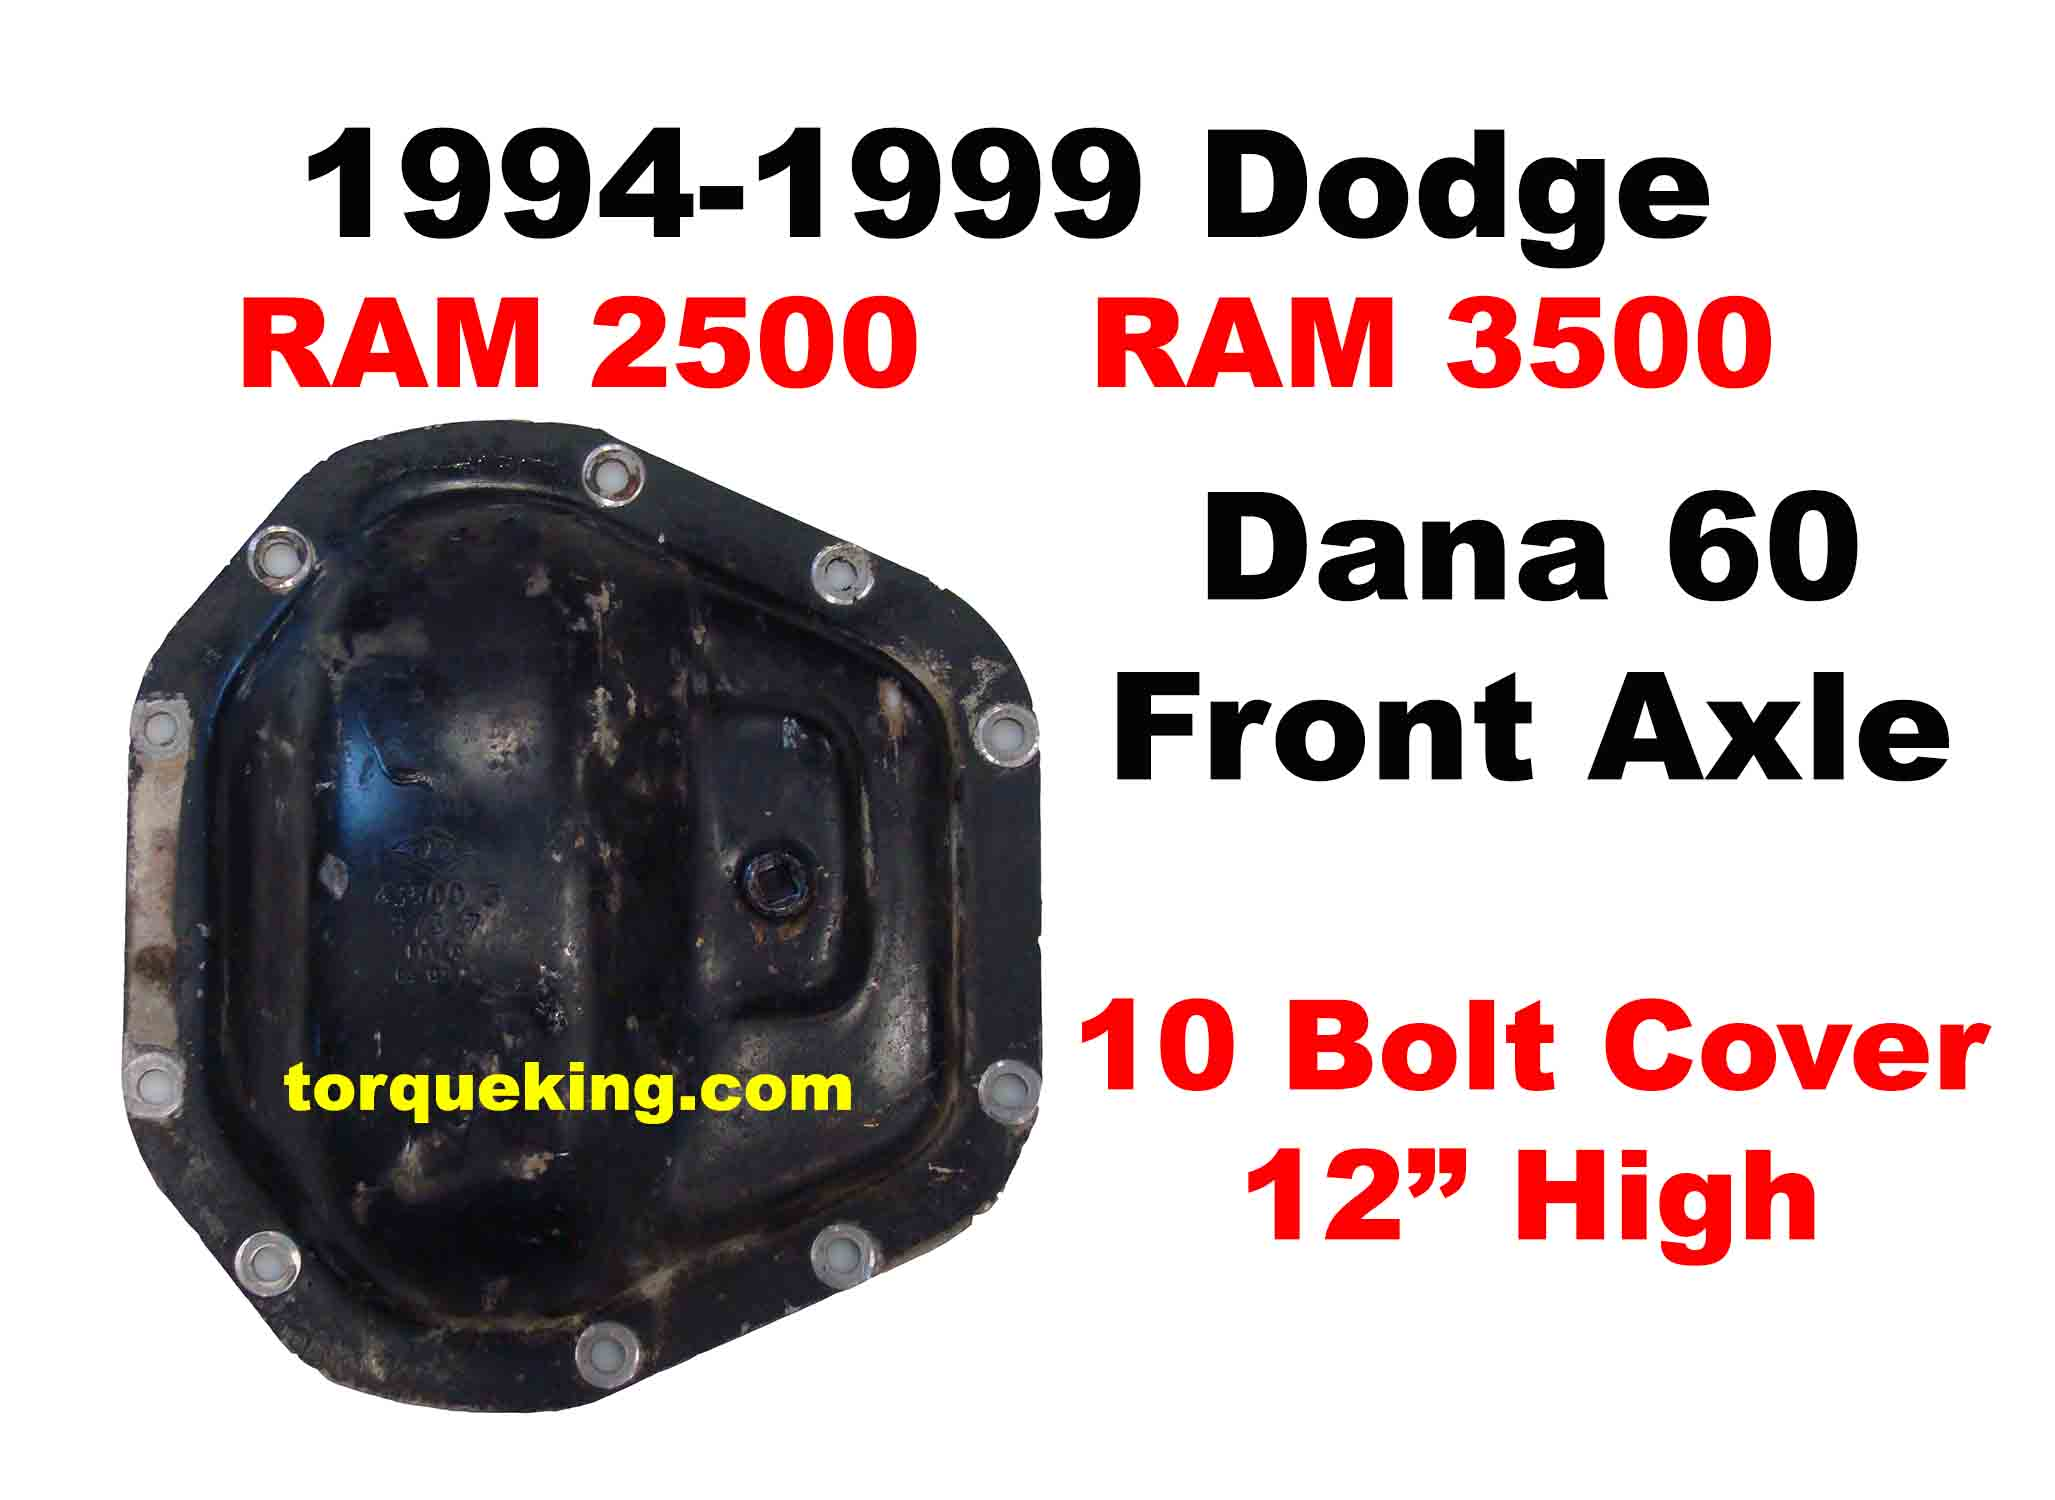 Dodge Dana 60 Front Axle | Buy Parts & Tools for 1994 to